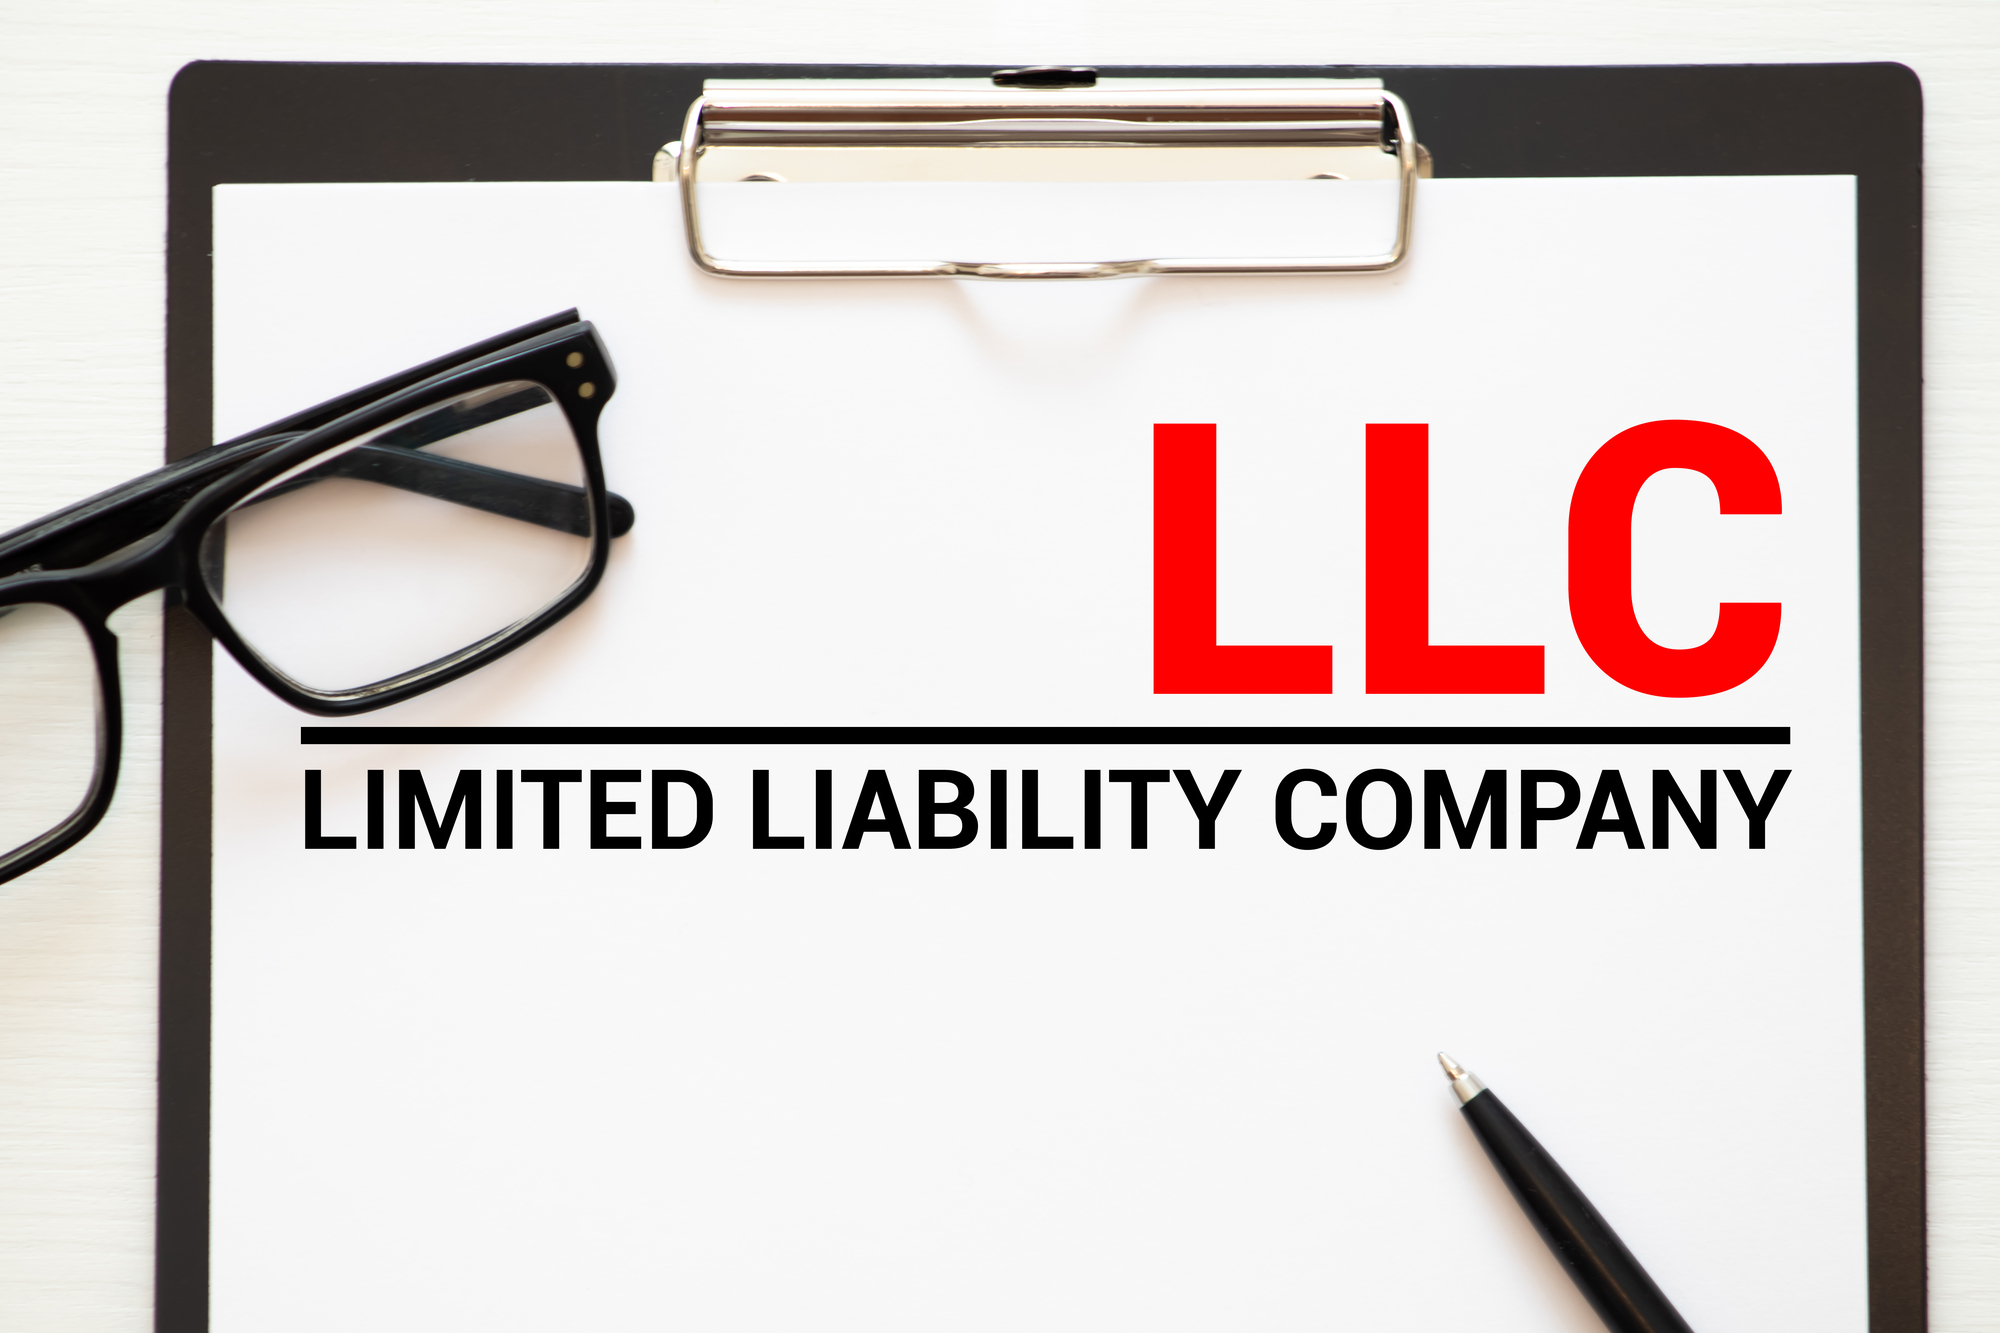 LLC Limited Liability Company - handwriting on paper with cup of coffee and pen, acronym business concept